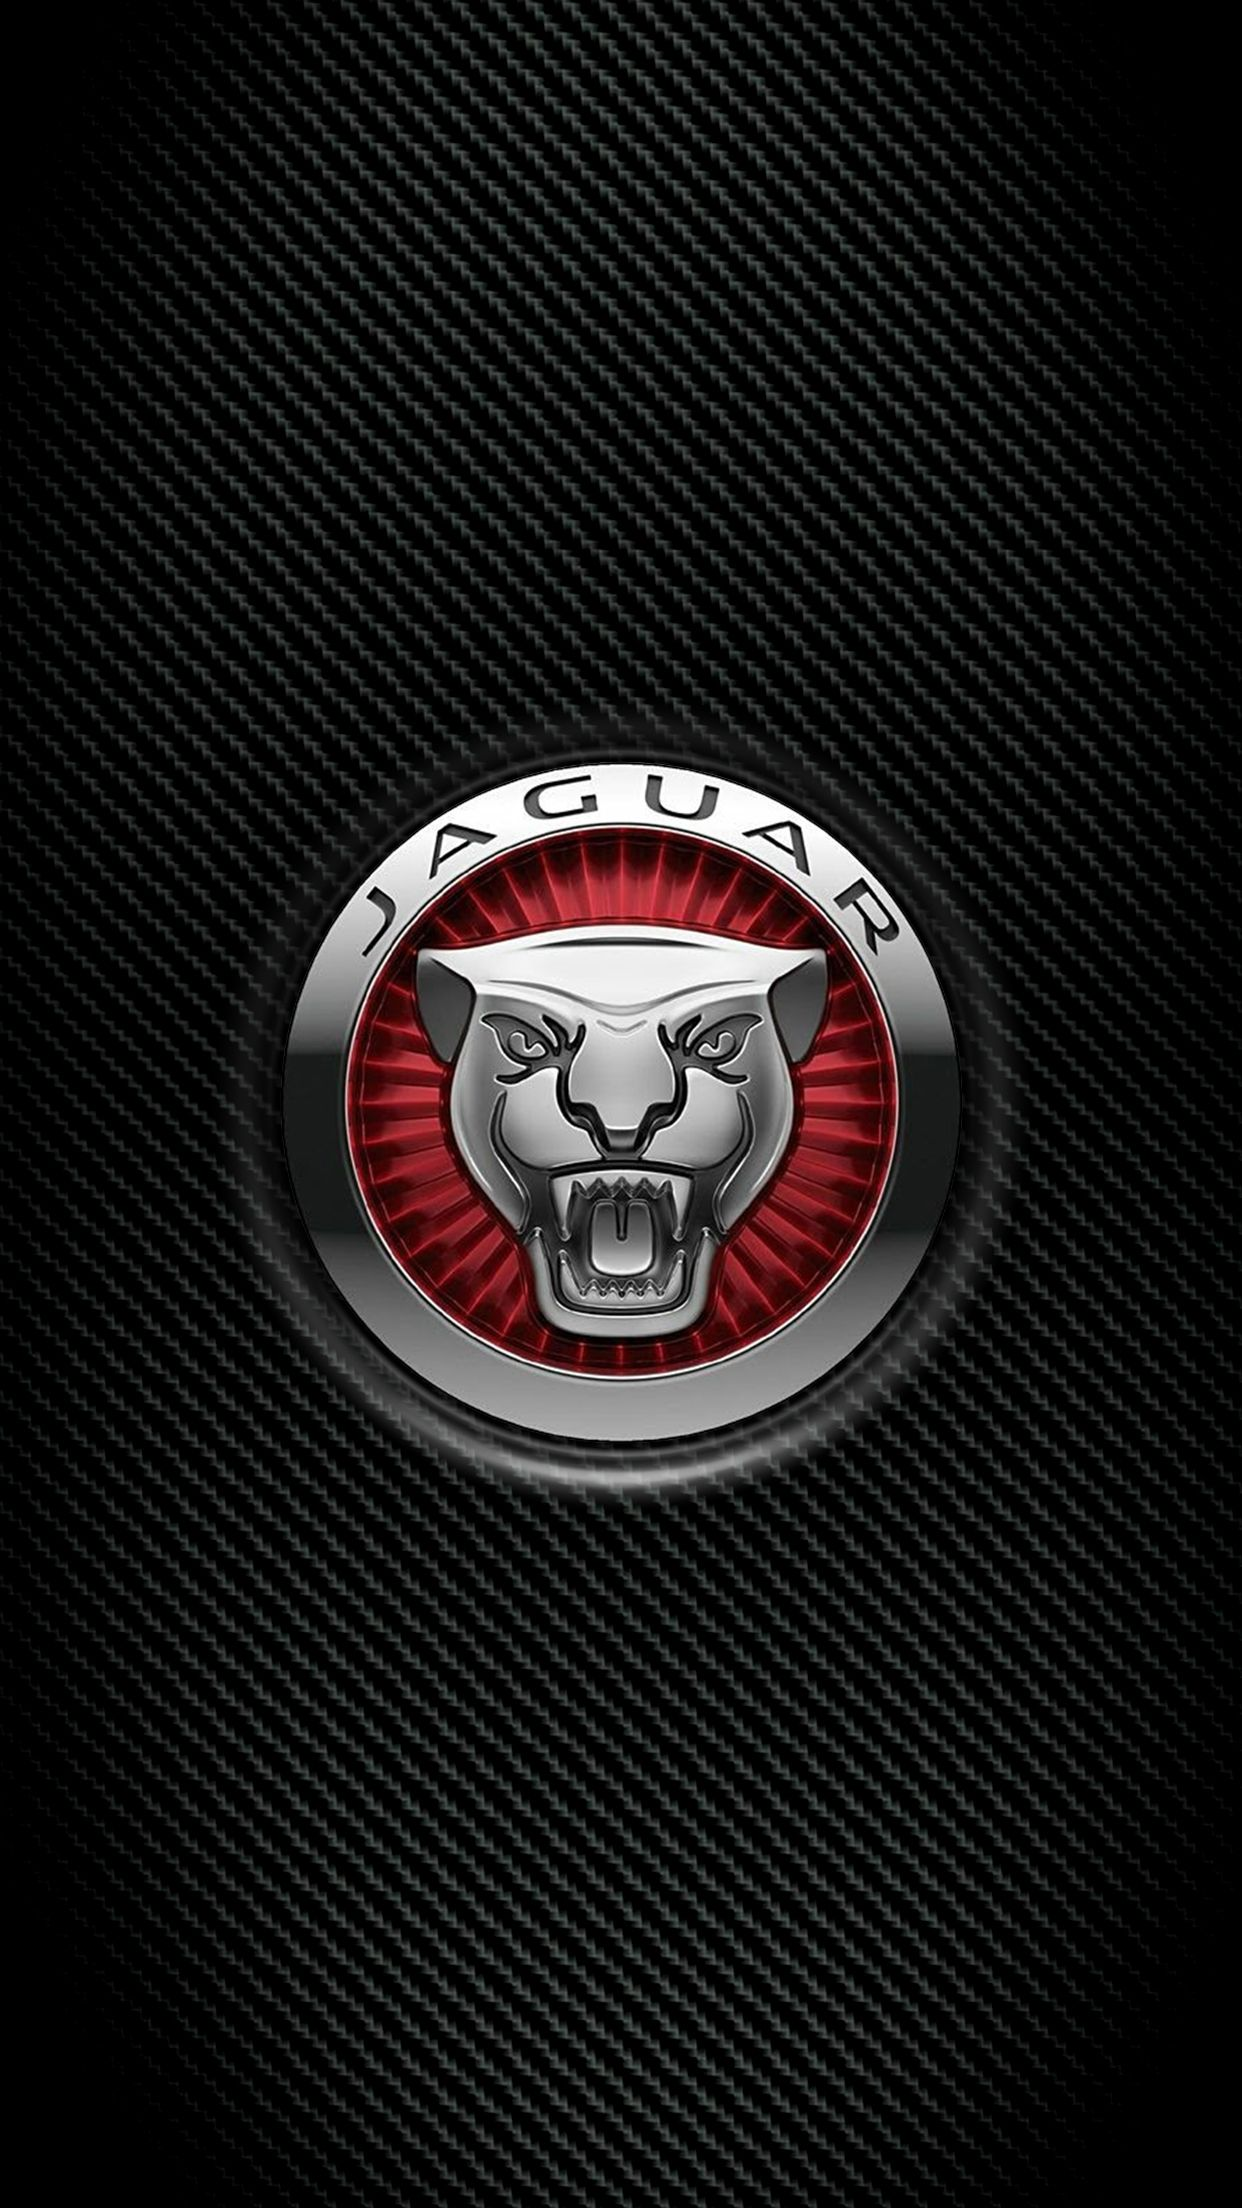 Jaguar Logo Wallpaper Screen Saver For Smartphone Jaguar Car